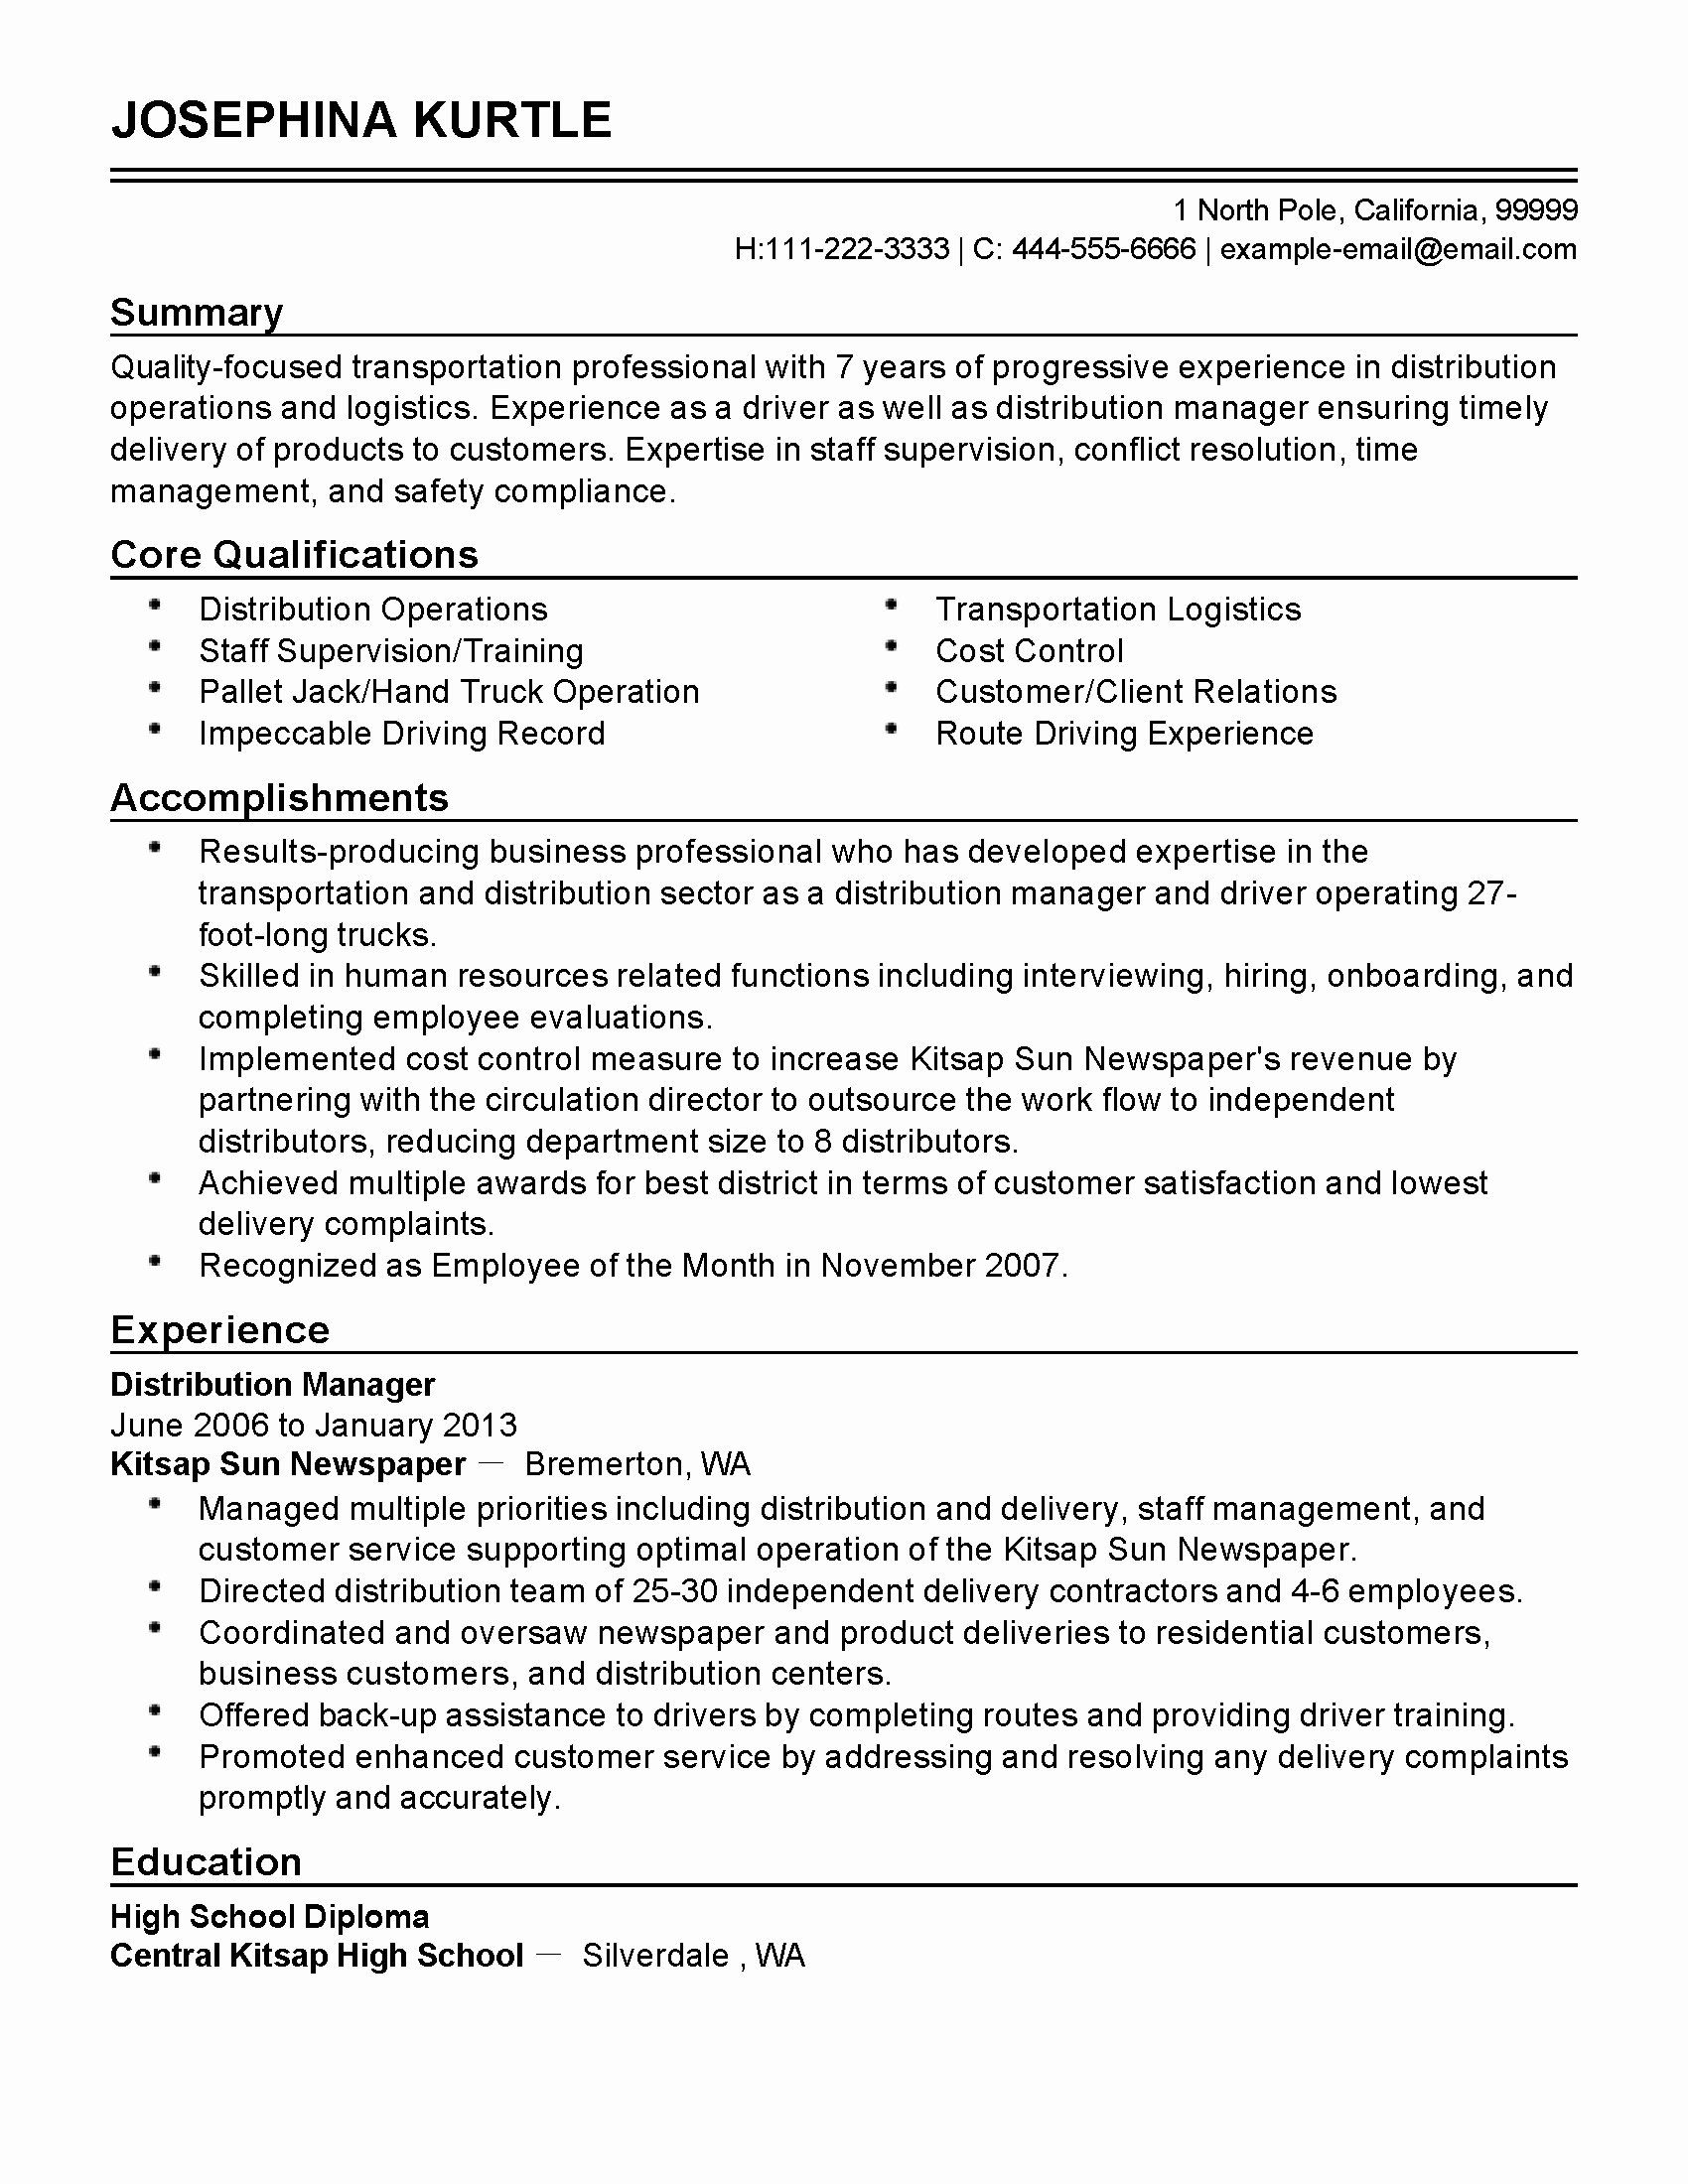 rutgers business school resume template inspirational 50 fresh graduate lawyer cv sample best career objective legal secretary